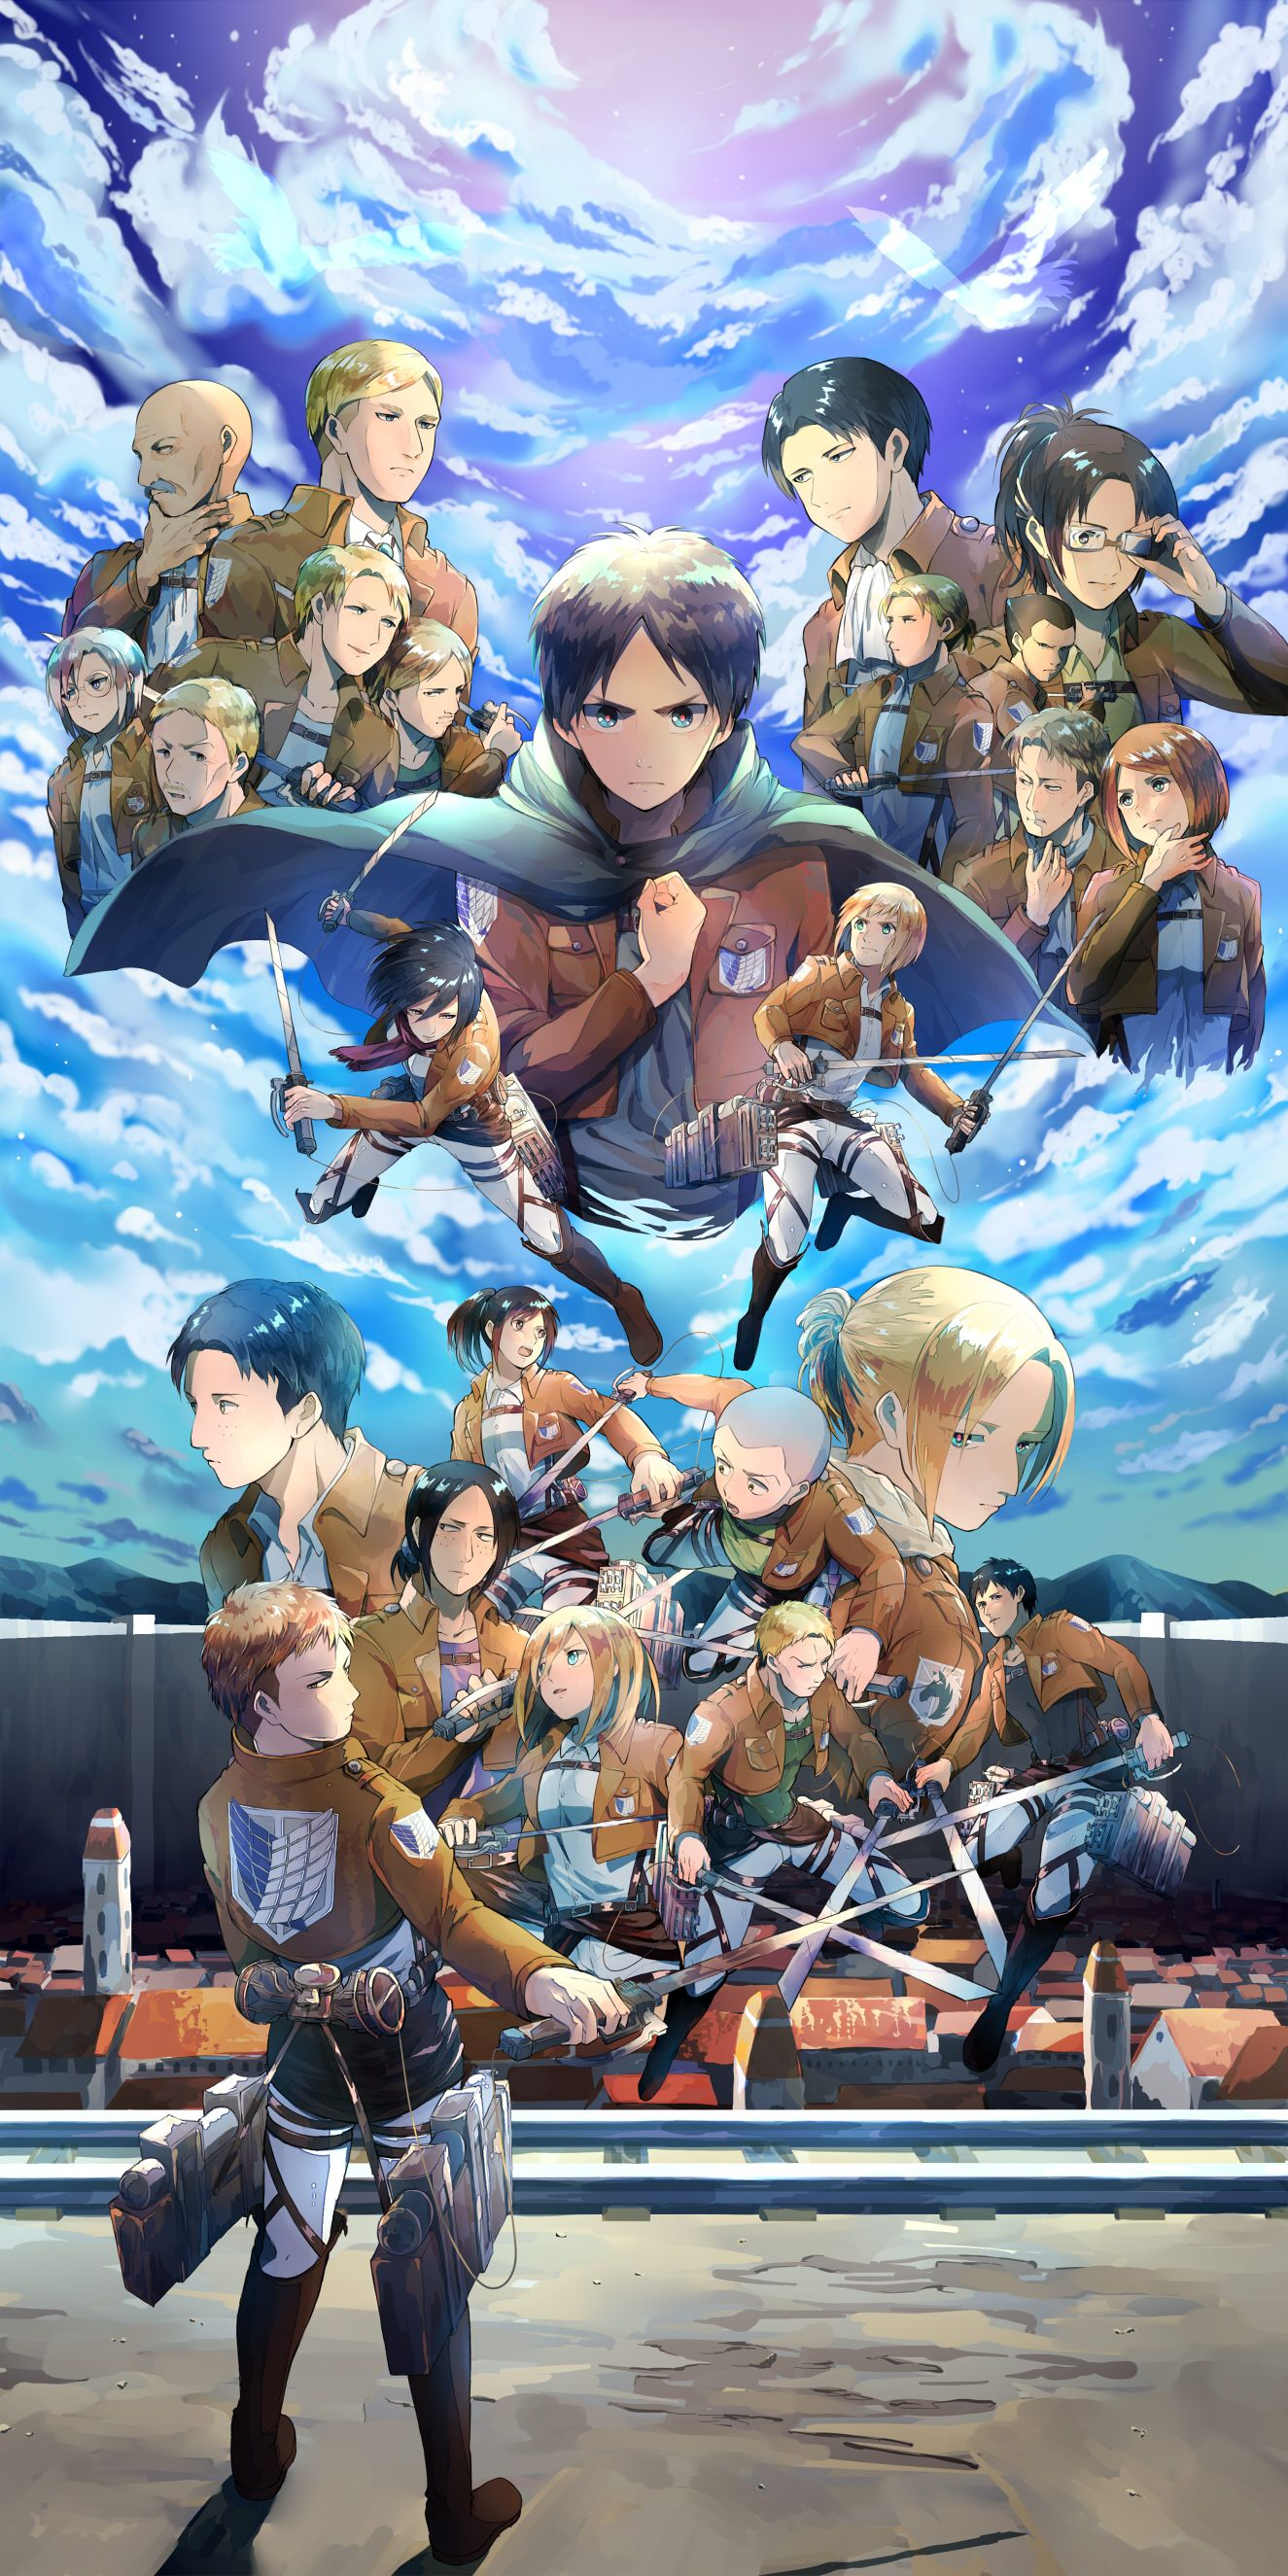 Shutterstock.com sizing the walls sizing allows you to maneuver the paper into position on the wall without tearing. Tags: Shingeki no Kyojin, Mikasa Ackerman, Christa Renz ...